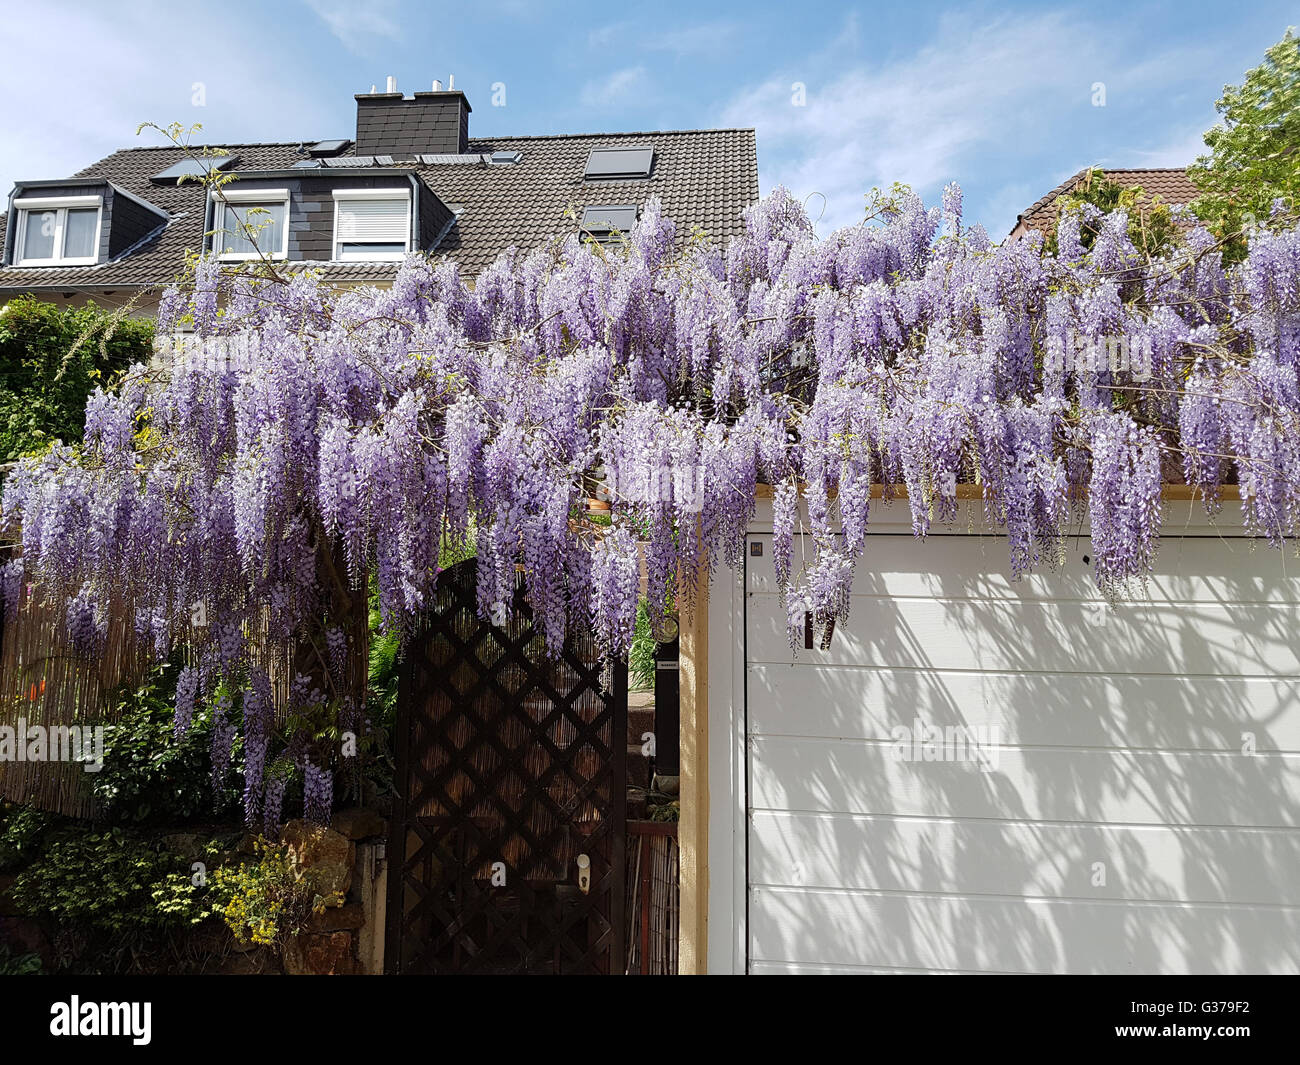 blauregen wisteria sinensis chinesische glyzine stockfoto bild 105267318 alamy. Black Bedroom Furniture Sets. Home Design Ideas